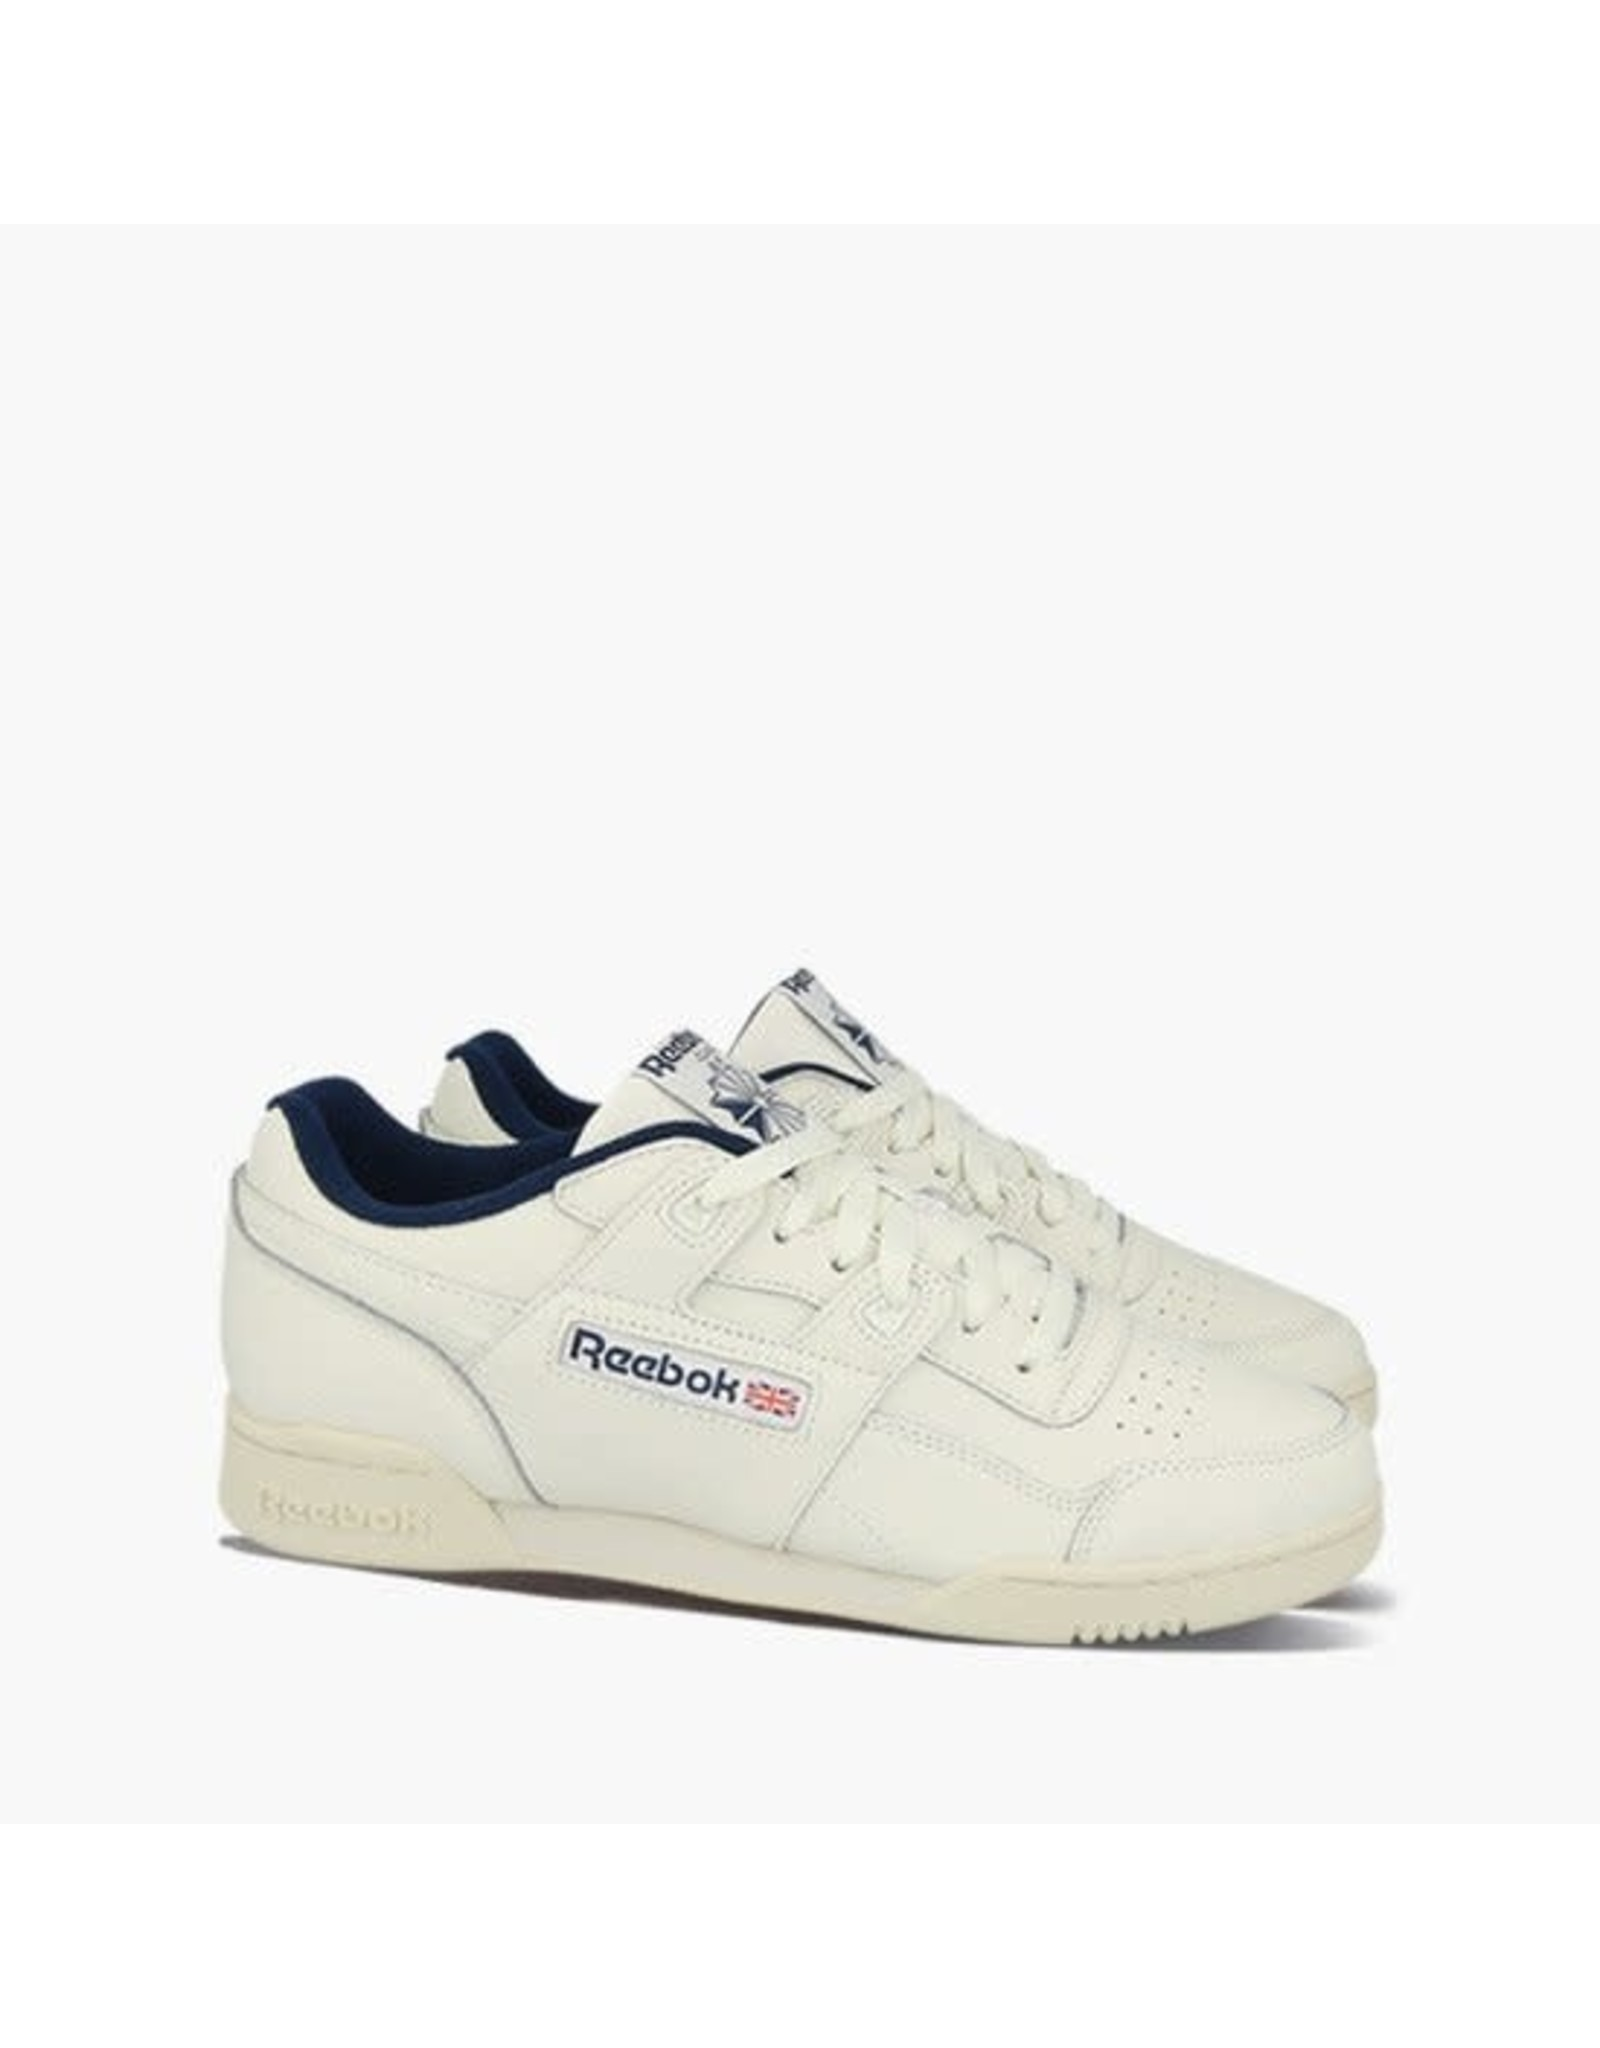 Reebok Reebok Workout plus